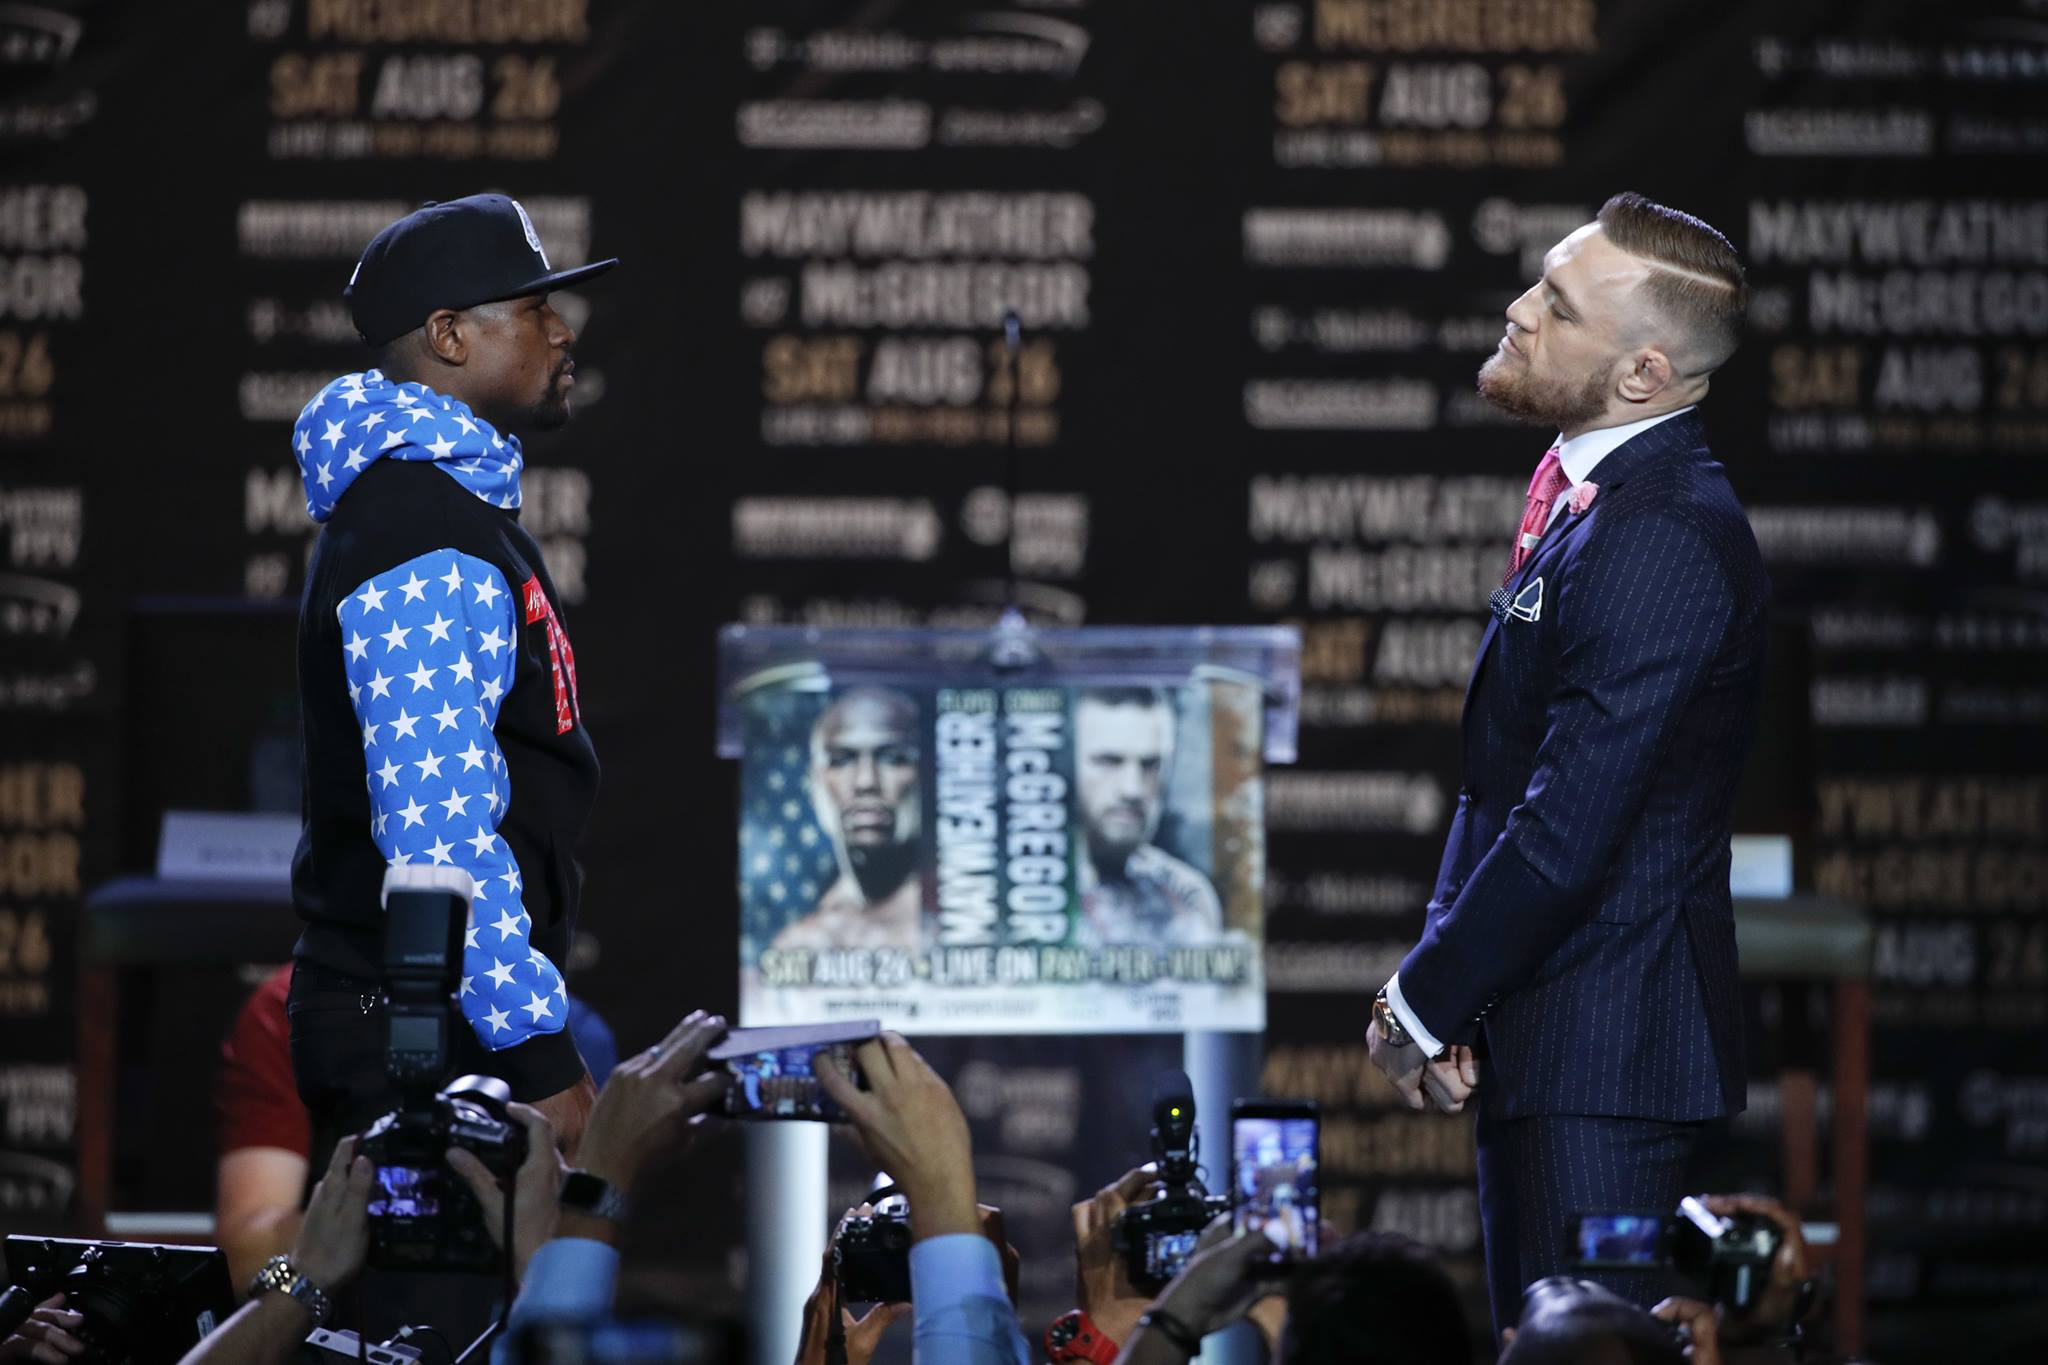 Conor McGregor's 'Dance, Boy' Comments Weren't Racist, Says Floyd Mayweather Sr